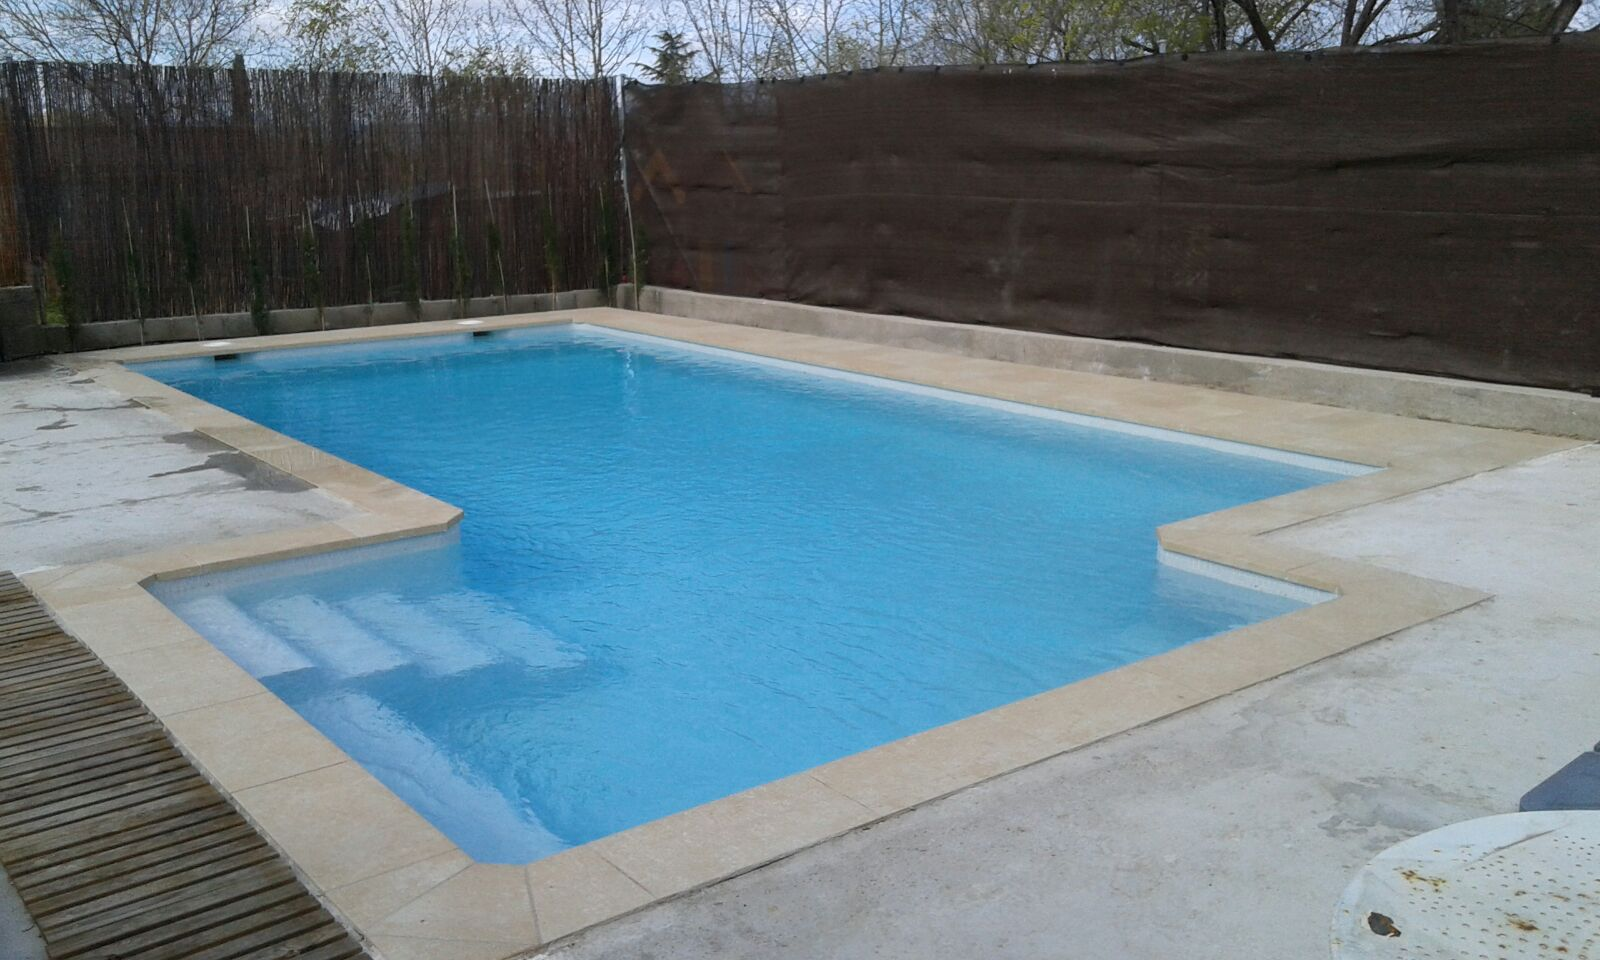 Coste piscina awesome piscina with coste piscina awesome for Piscinas super baratas